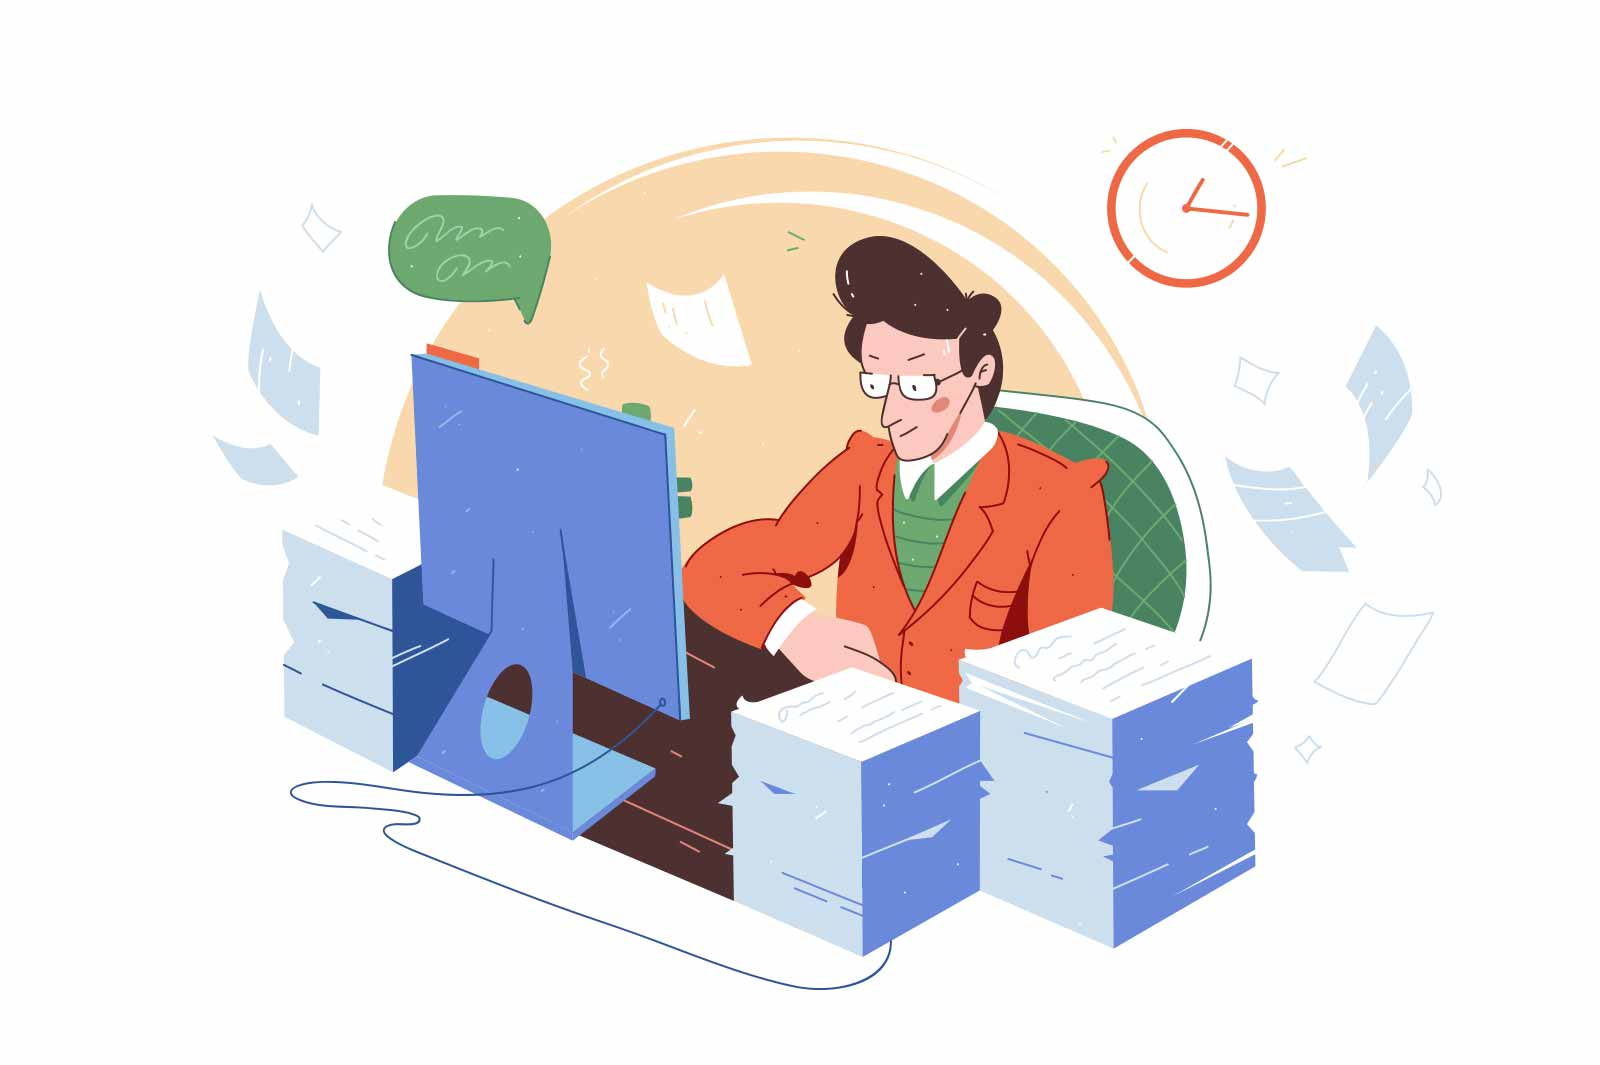 Office worker with large amount of work vector illustration. Tired employee with paper stack flat style. Clerk, workload, stress concept